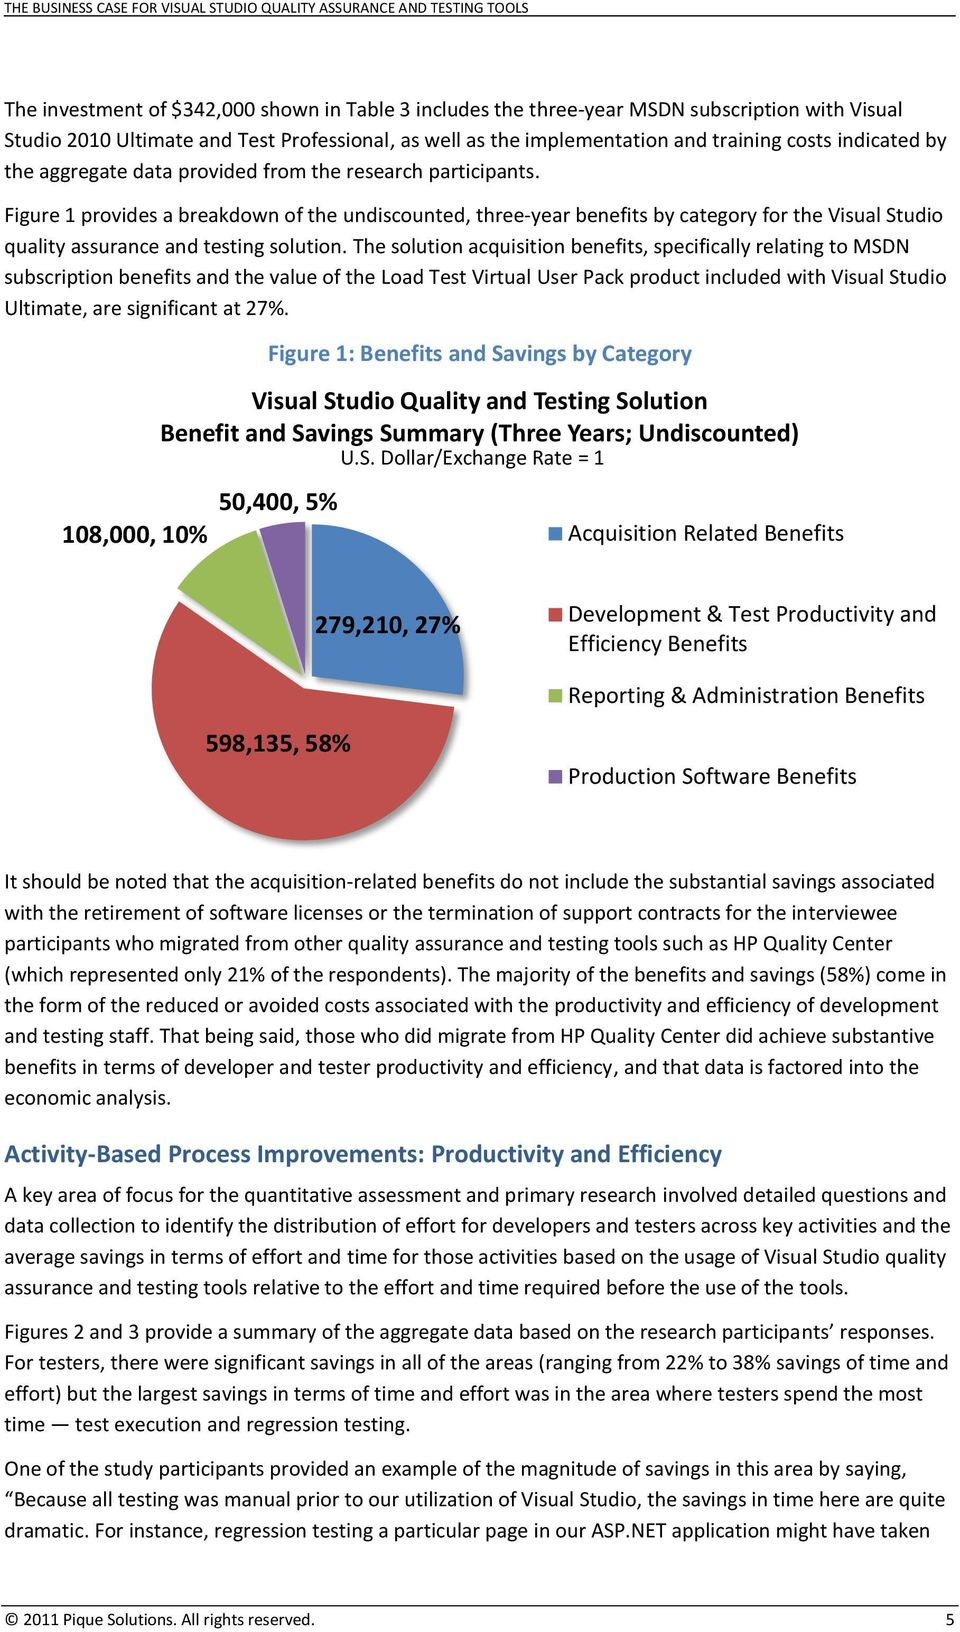 Figure 1 provides a breakdown of the undiscounted, three-year benefits by category for the Visual Studio quality assurance and testing solution.